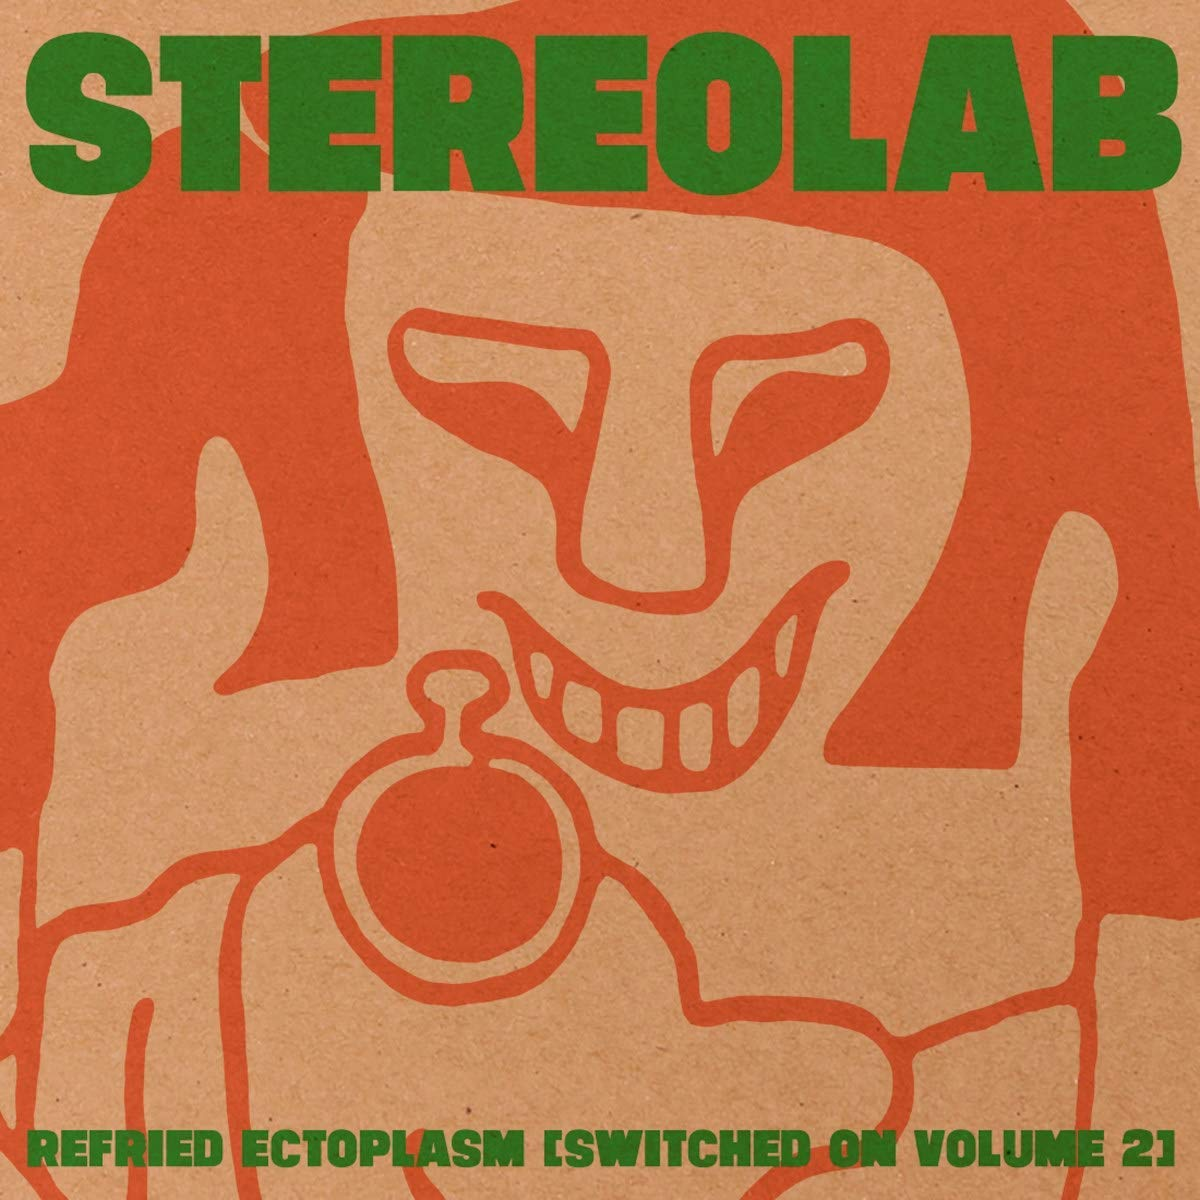 Stereolab - Refried Ectoplasm (Switched On Vol. 2) [LP]